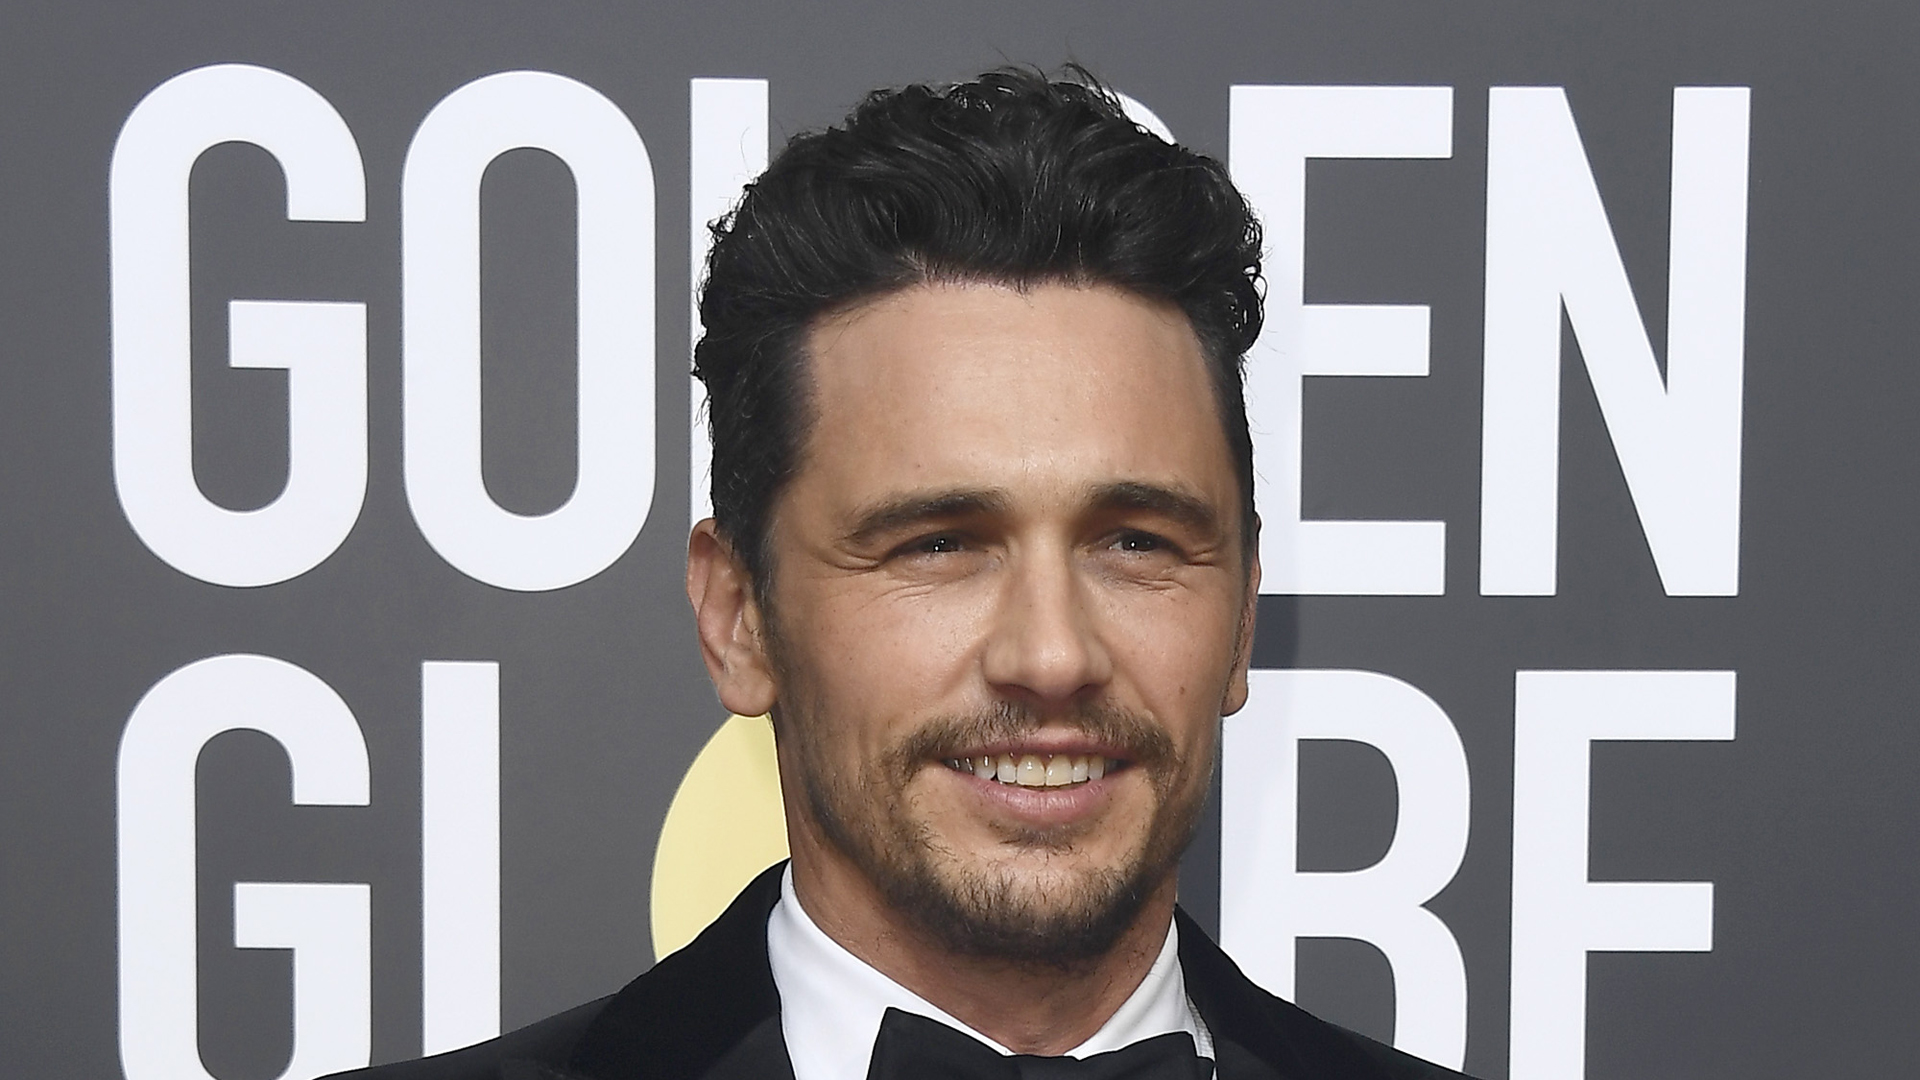 Actor/director James Franco attends The 75th Annual Golden Globe Awards on Jan. 7, 2018 in Beverly Hills. (Credit: Frazer Harrison/Getty Images)